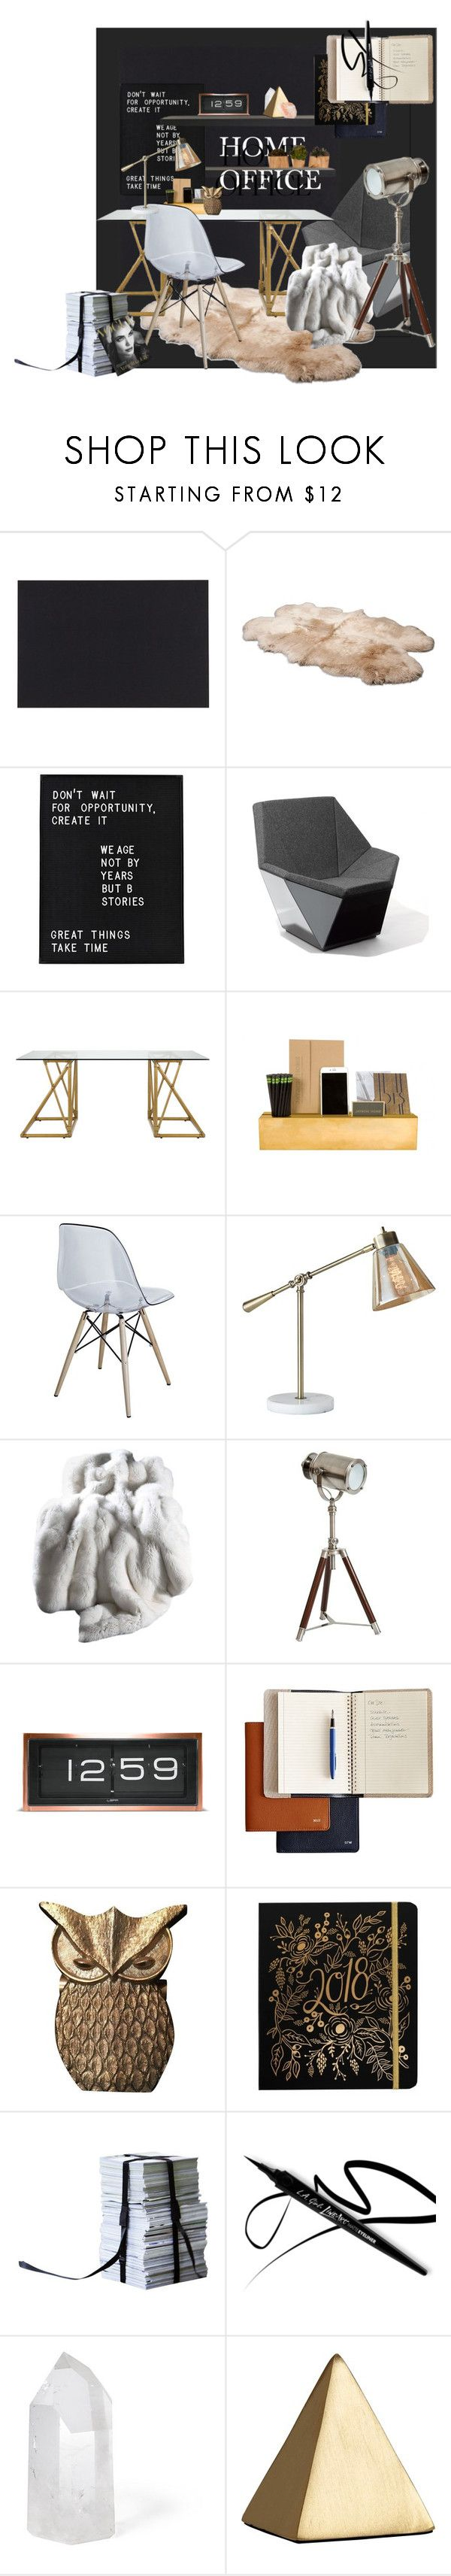 """""""Work Hard: Home Office"""" by moody-board ❤ liked on Polyvore featuring interior, interiors, interior design, home, home decor, interior decorating, Wallies, UGG, Knoll and Selamat"""